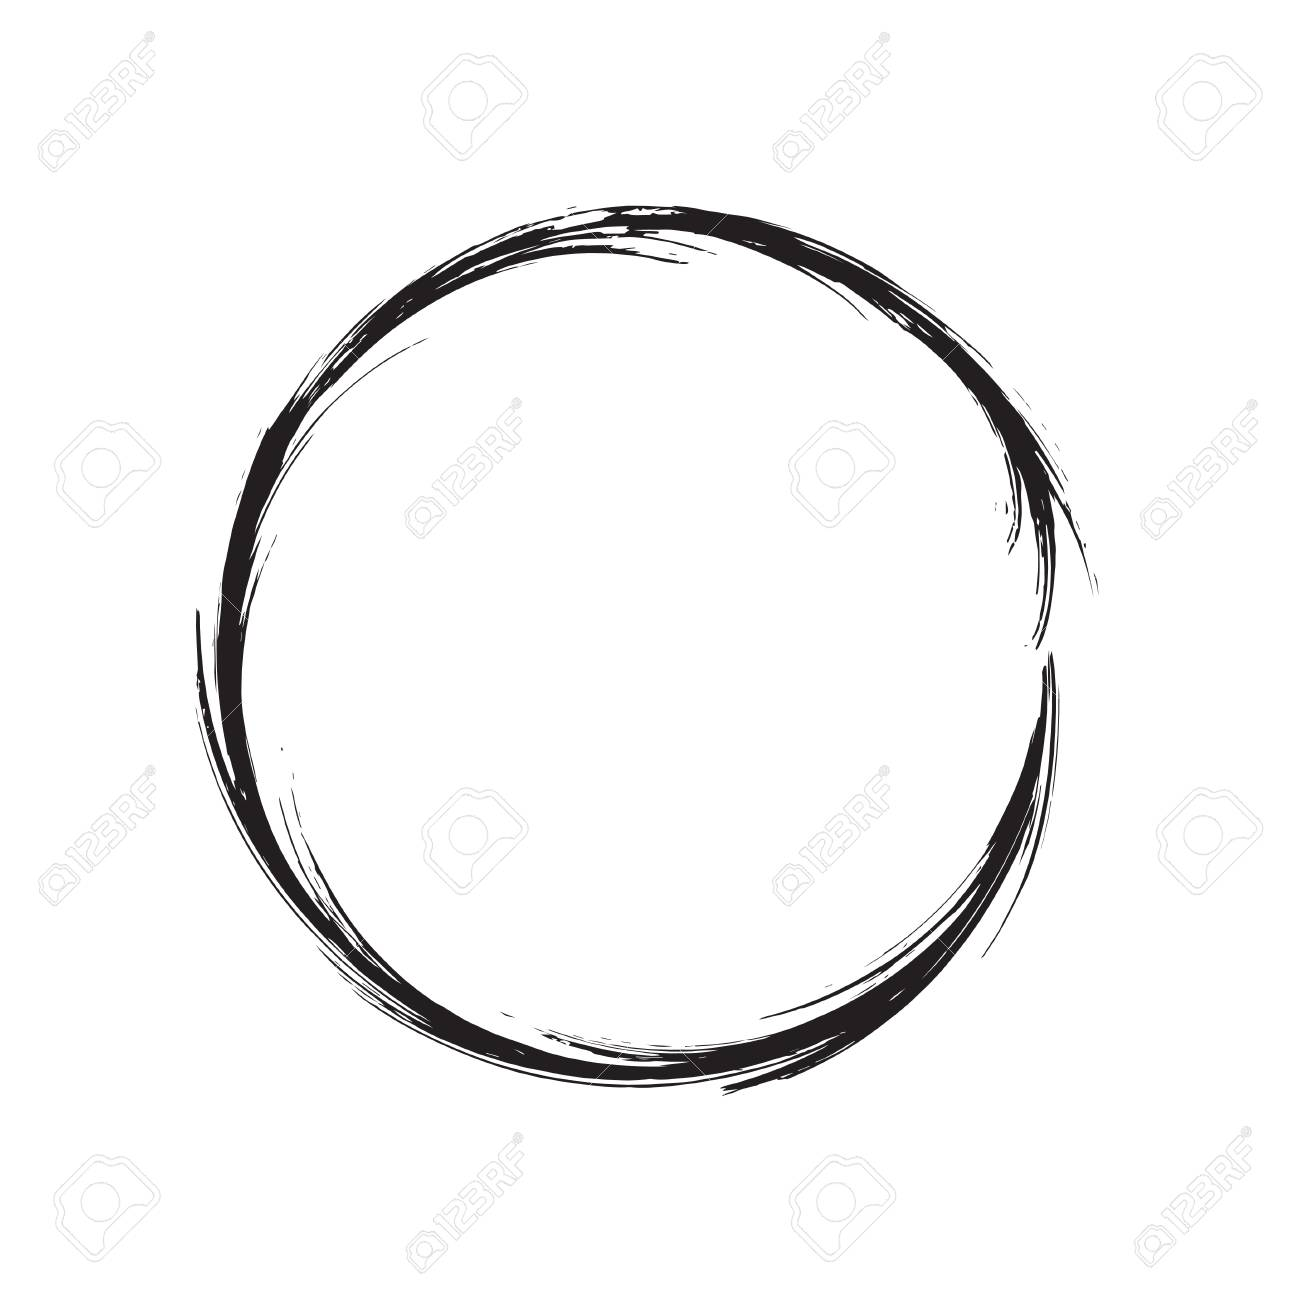 circle shape vector black grunge background. Vintage old round. A circular  trail mark.